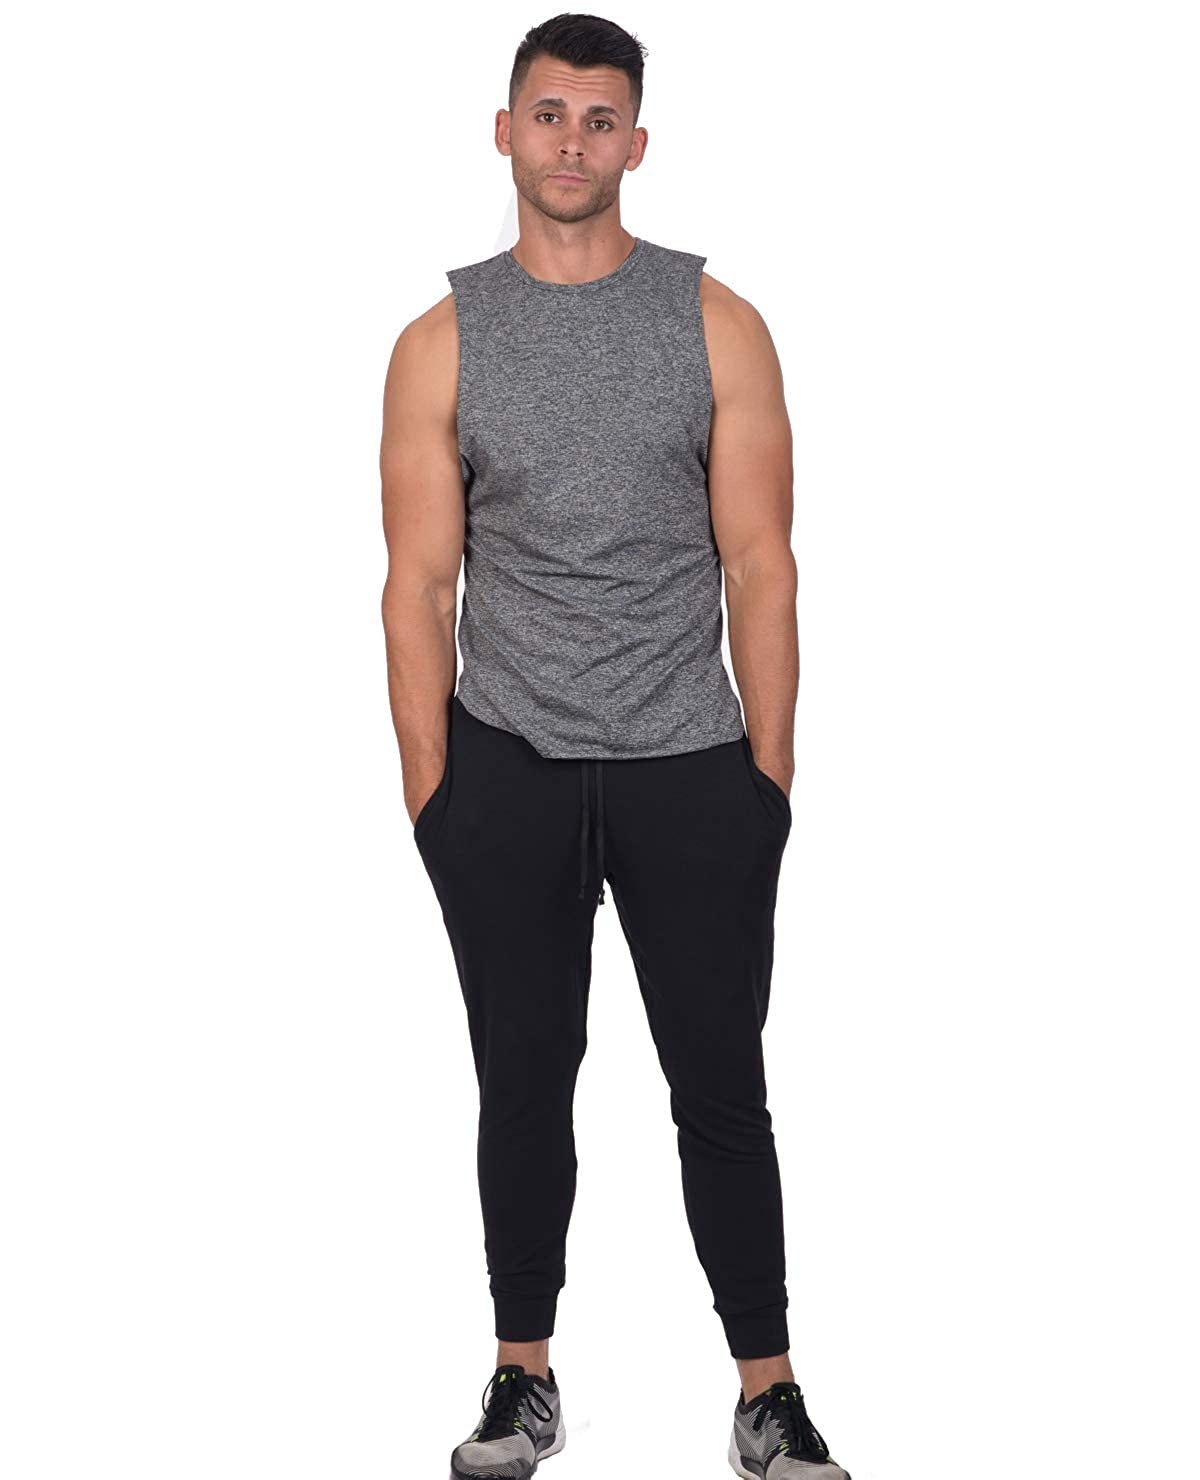 Attitude Apparel Grey Athletic Quick Dry Sleeveless Workout Running Muscle Tank Top Shirt for Men